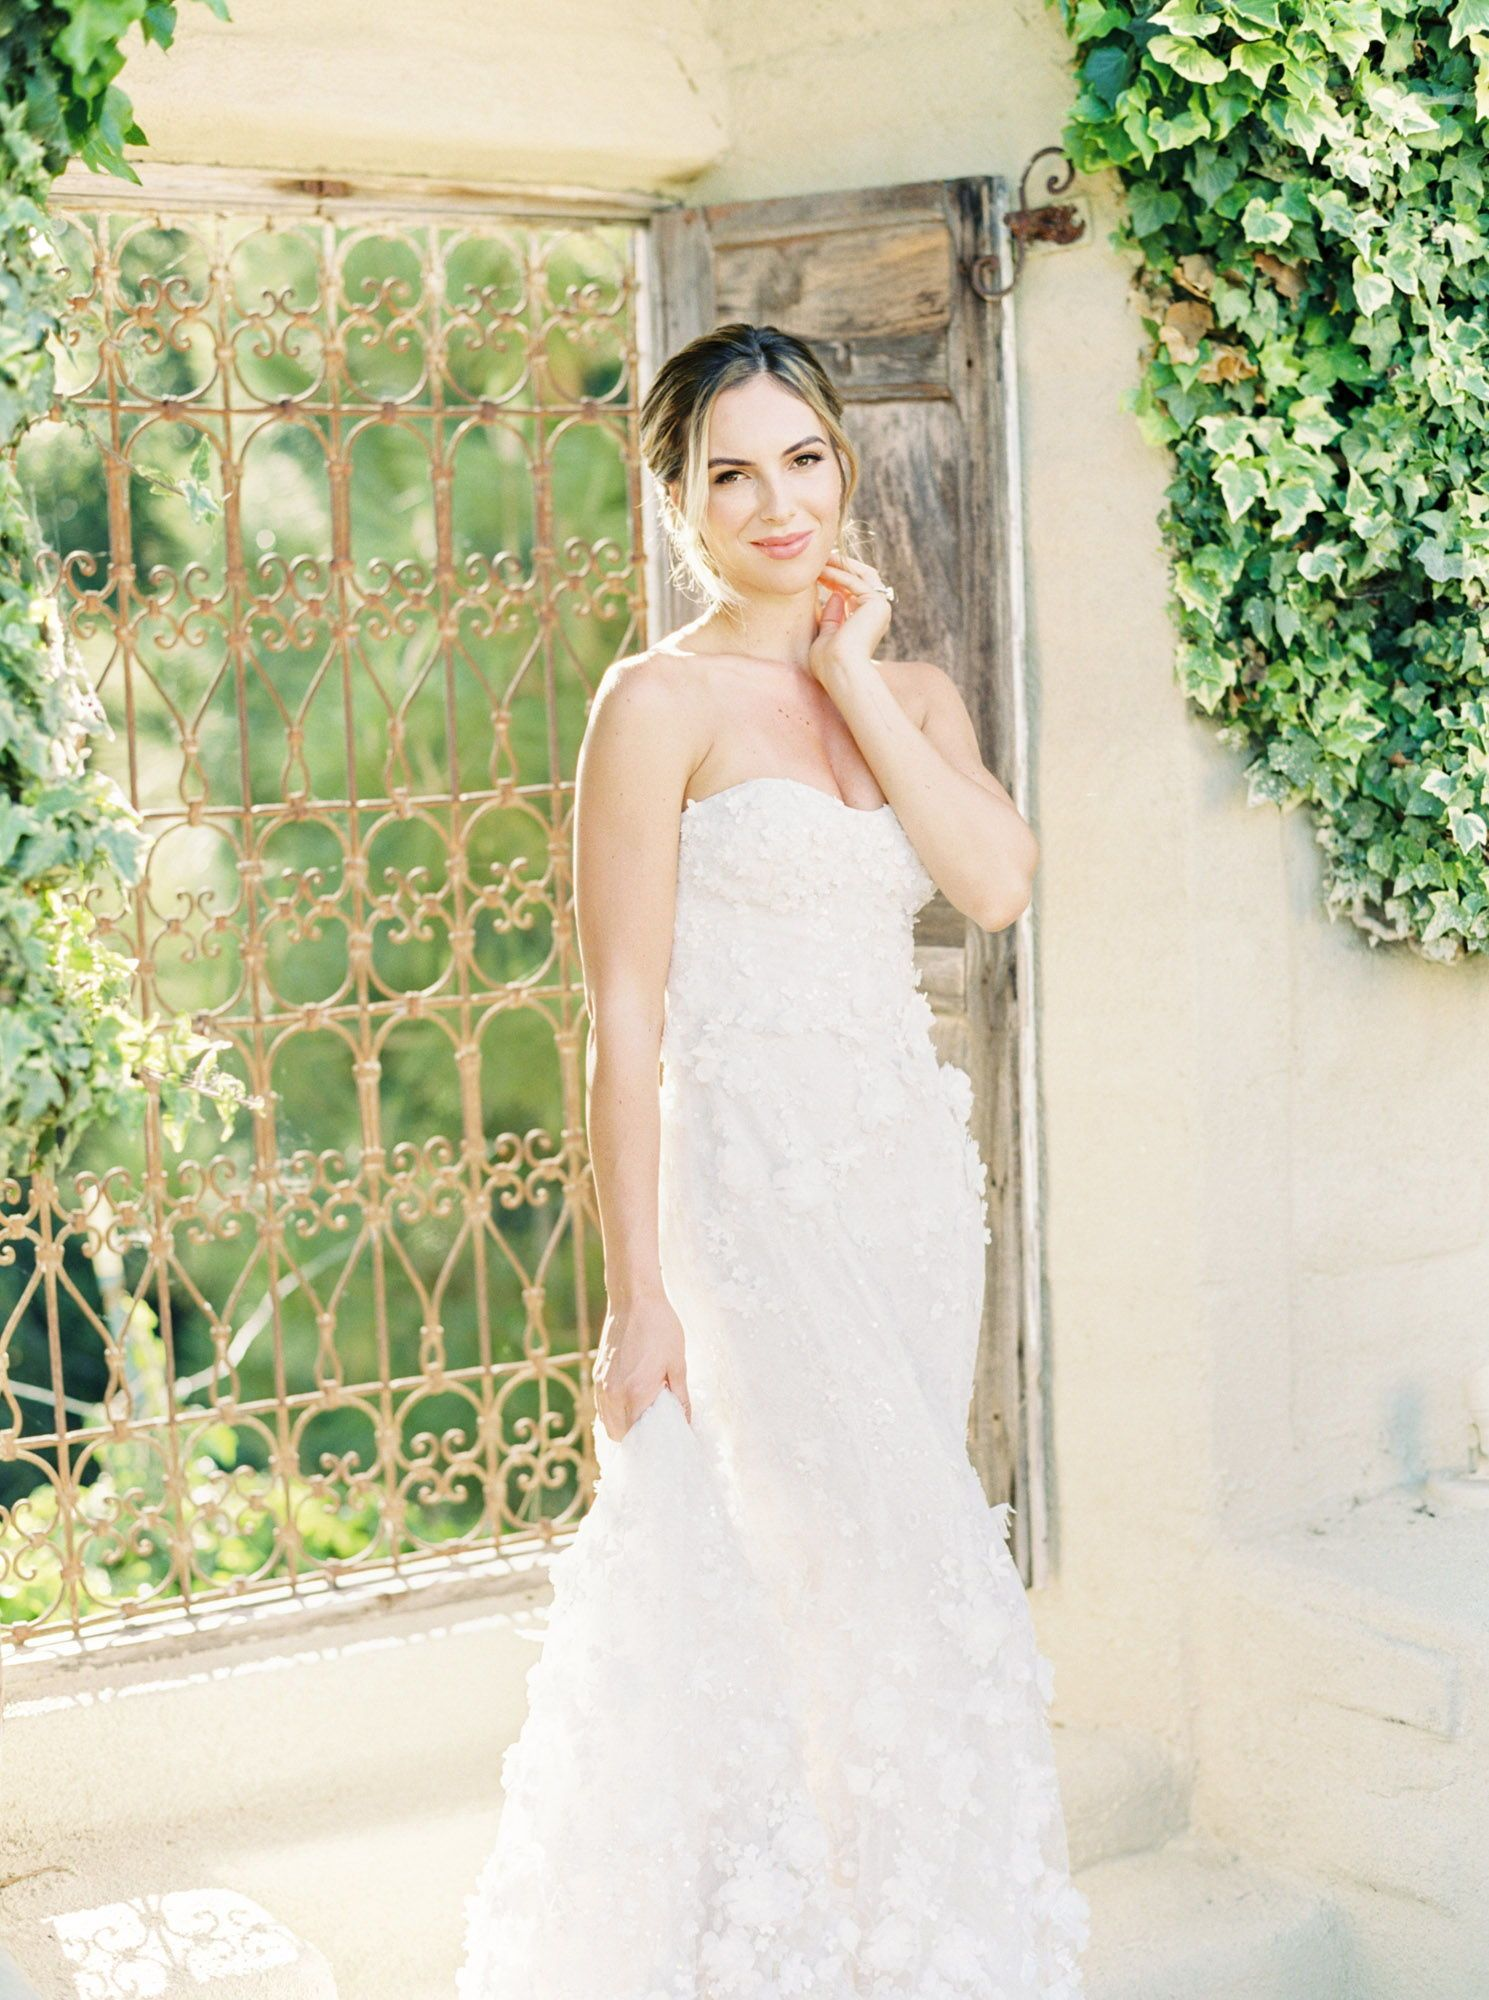 e4051a76 Bride next to ivy on wooden shutters wearing sweetheart Spring 2018 Marchesa  bridal gowns, backlit film image, Solvang Whispering Rose Ranch wedding by  film ...